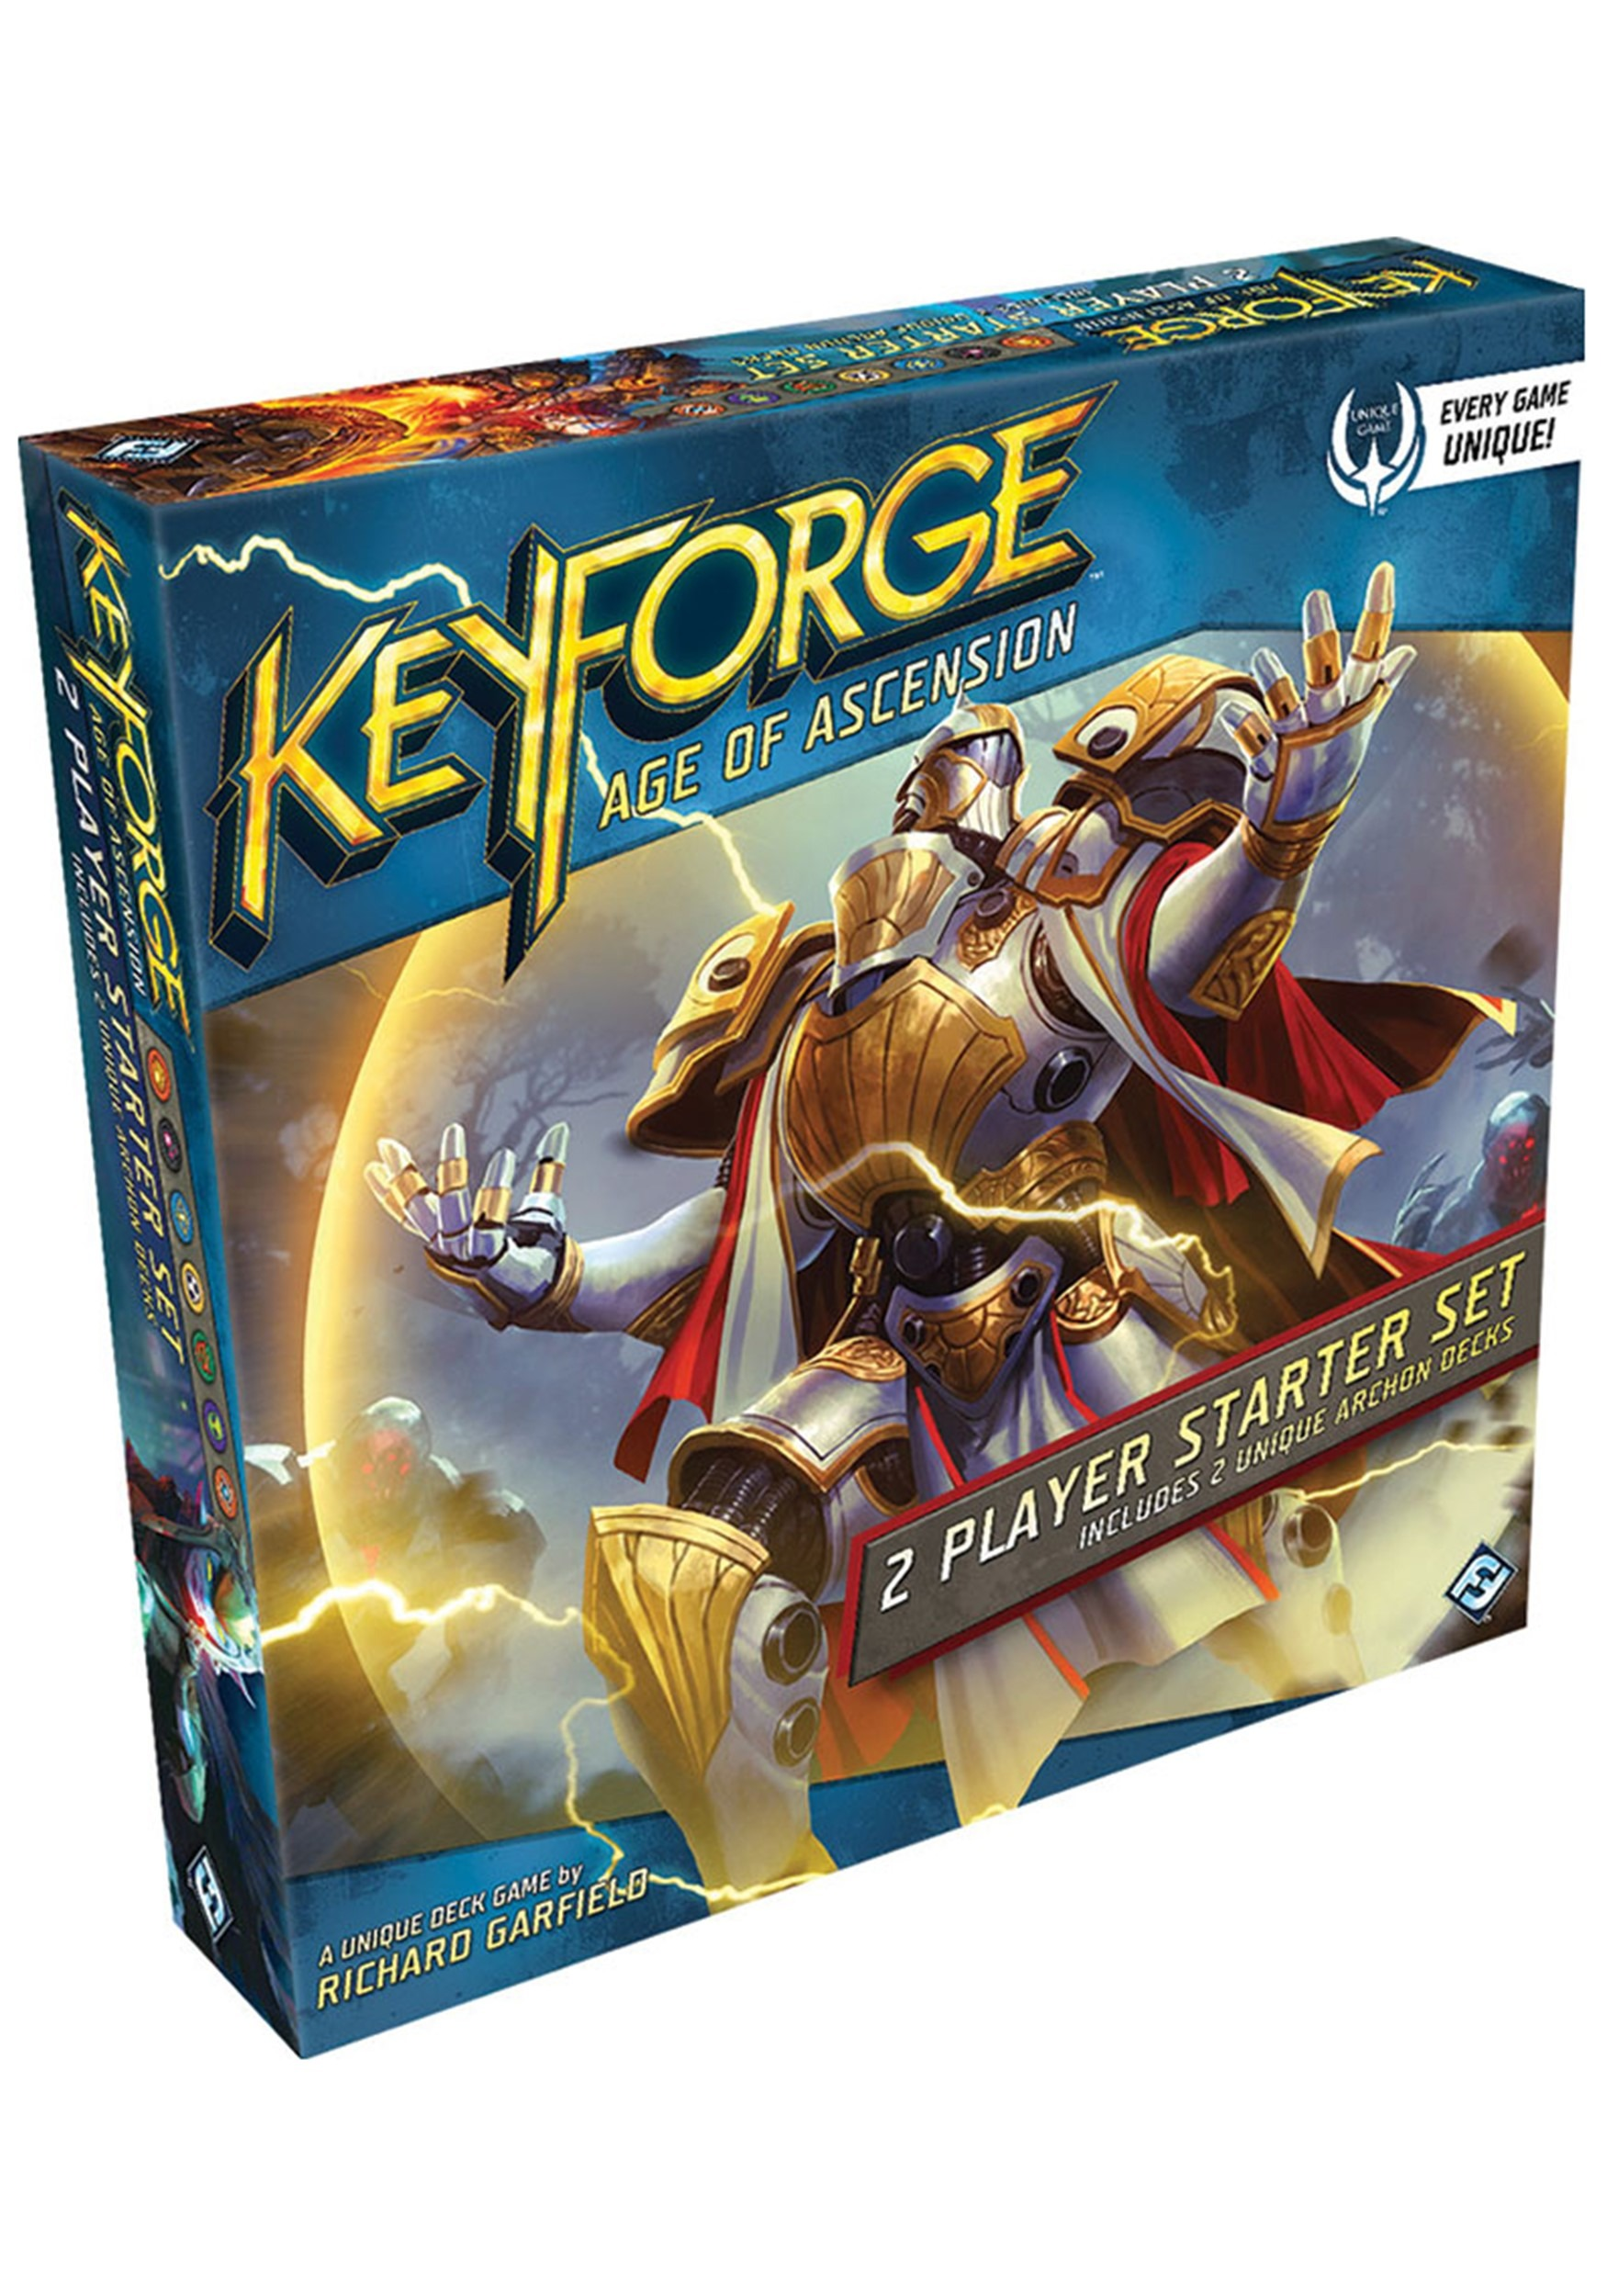 KeyForge:_Age_of_Ascension_Two-Player_Starter_Set_Card_Game